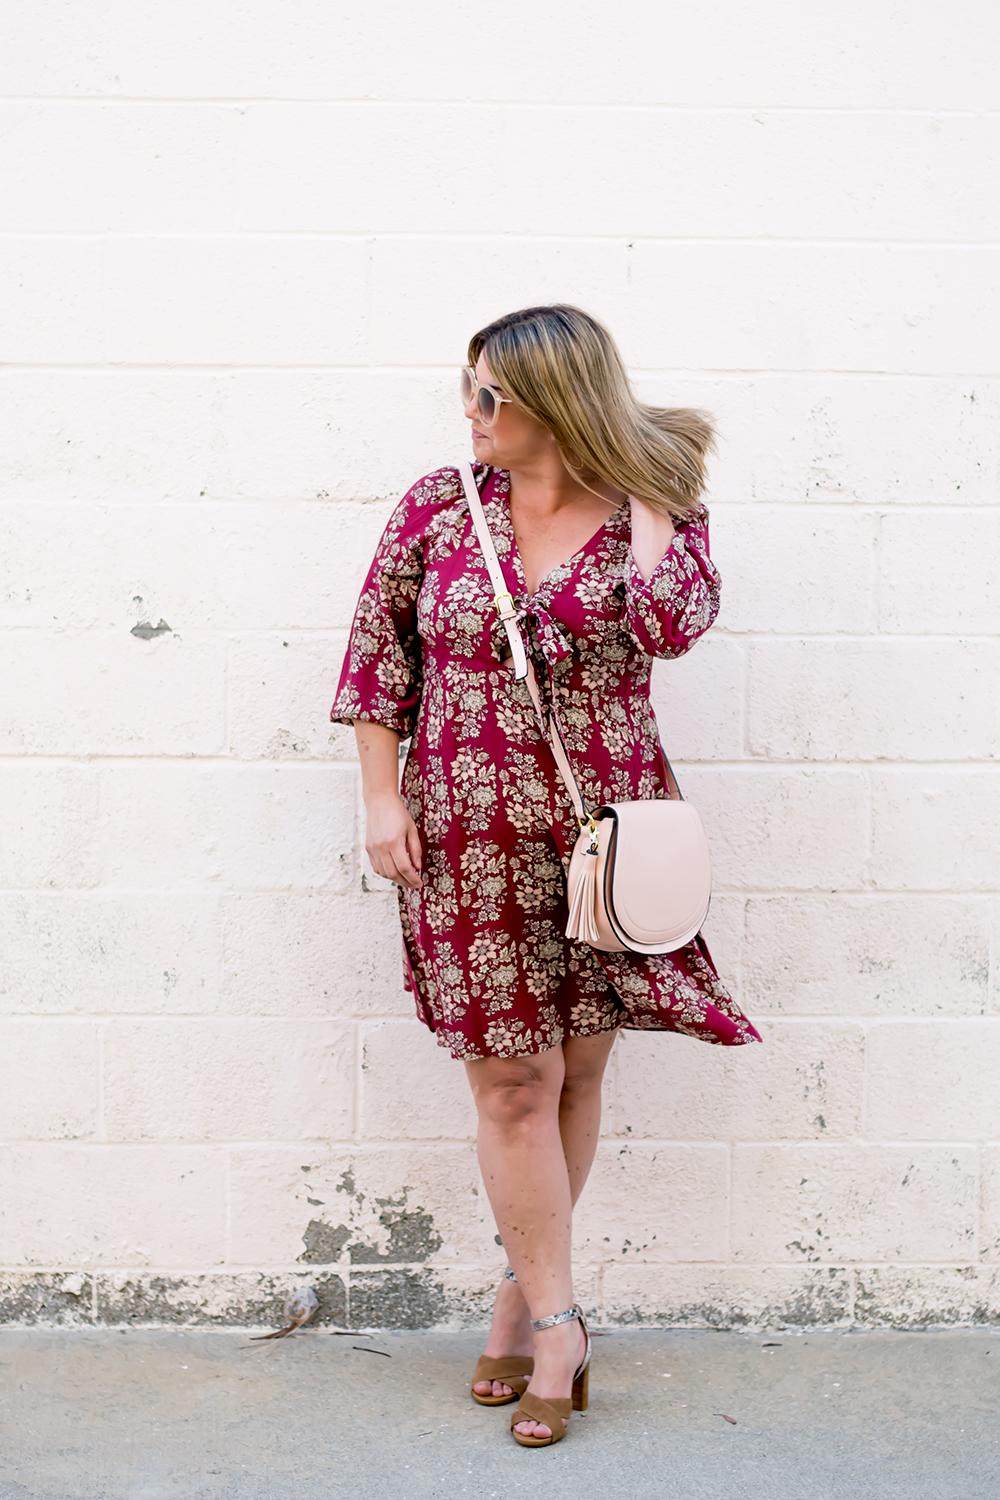 The-Best-Bohemian-Beach-Dresses-Boho-Outfit-The-Biggest-Trends-for-2017-Barefoot-in-LA-Fashion-Blog-Style-Ideas-1028